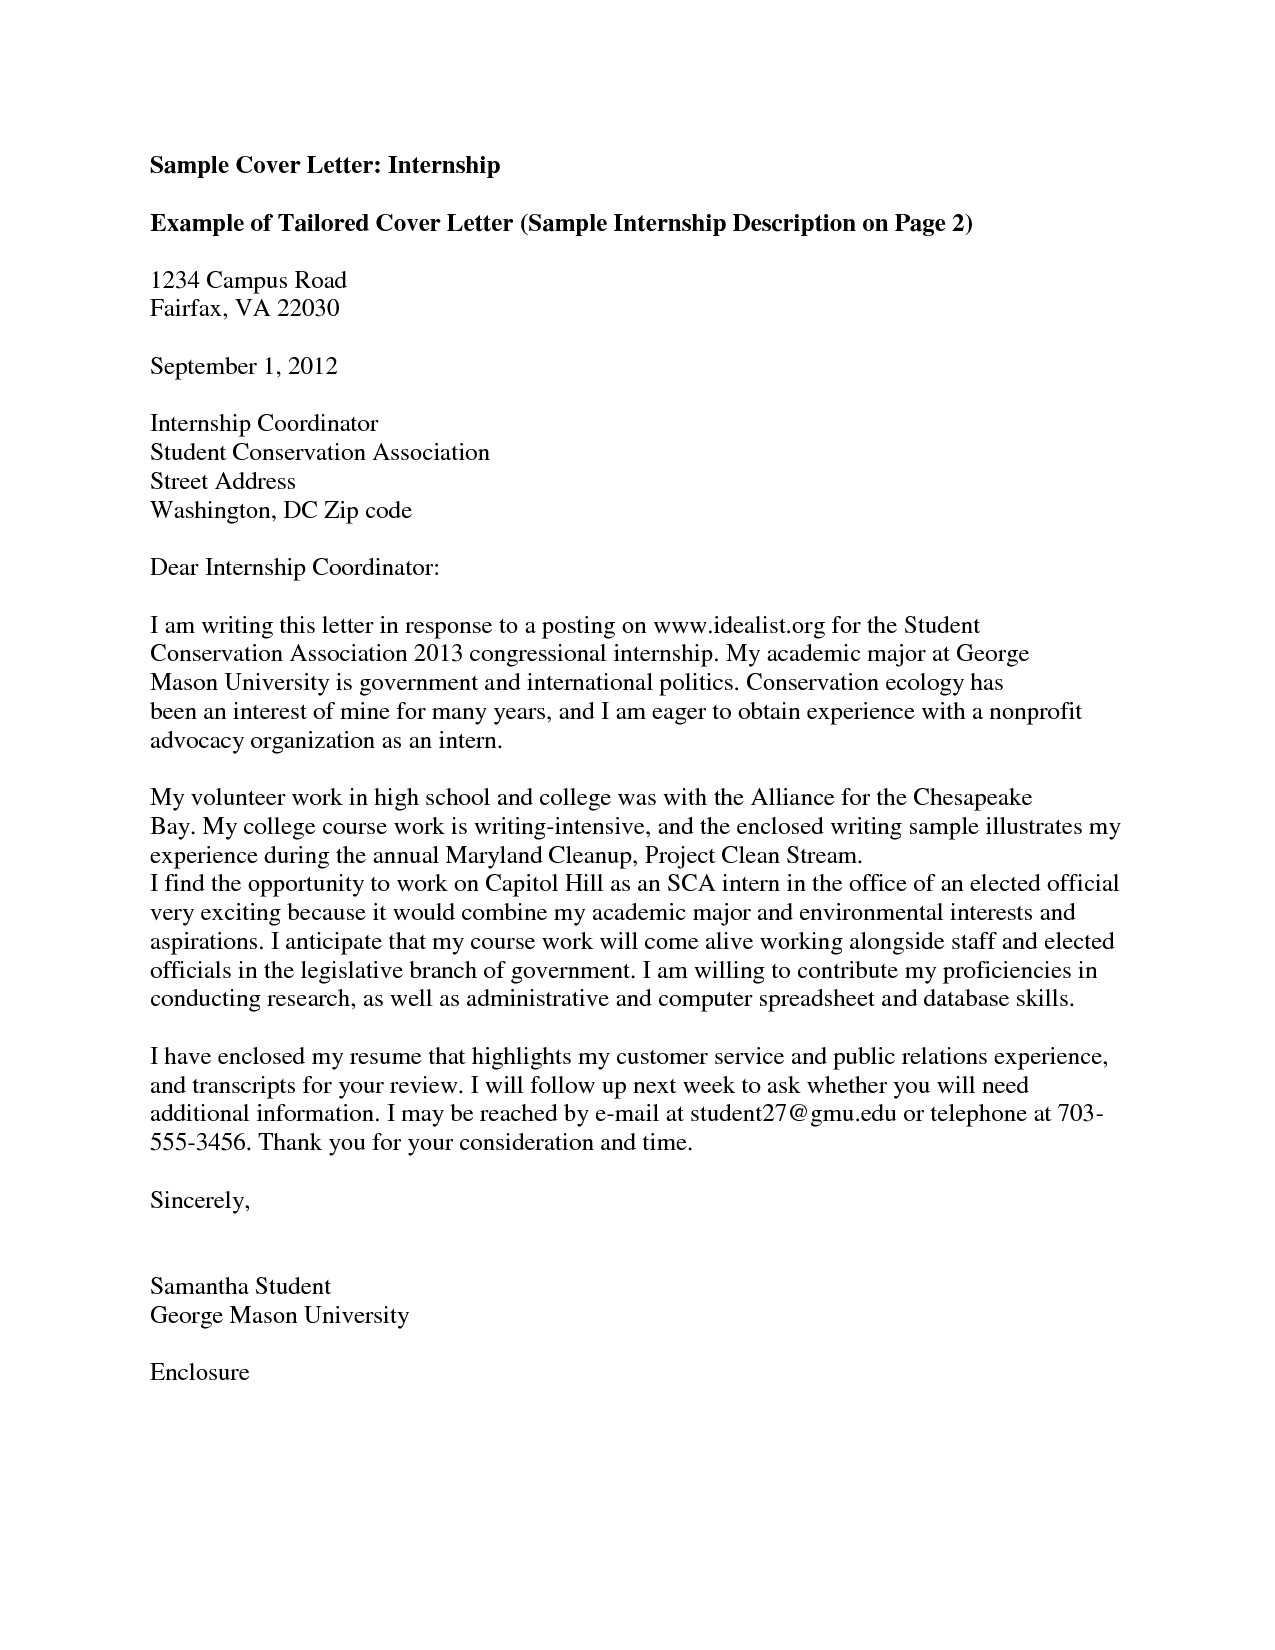 University Cover Letter Cover Letter Template University Letter Templates Cover Letter